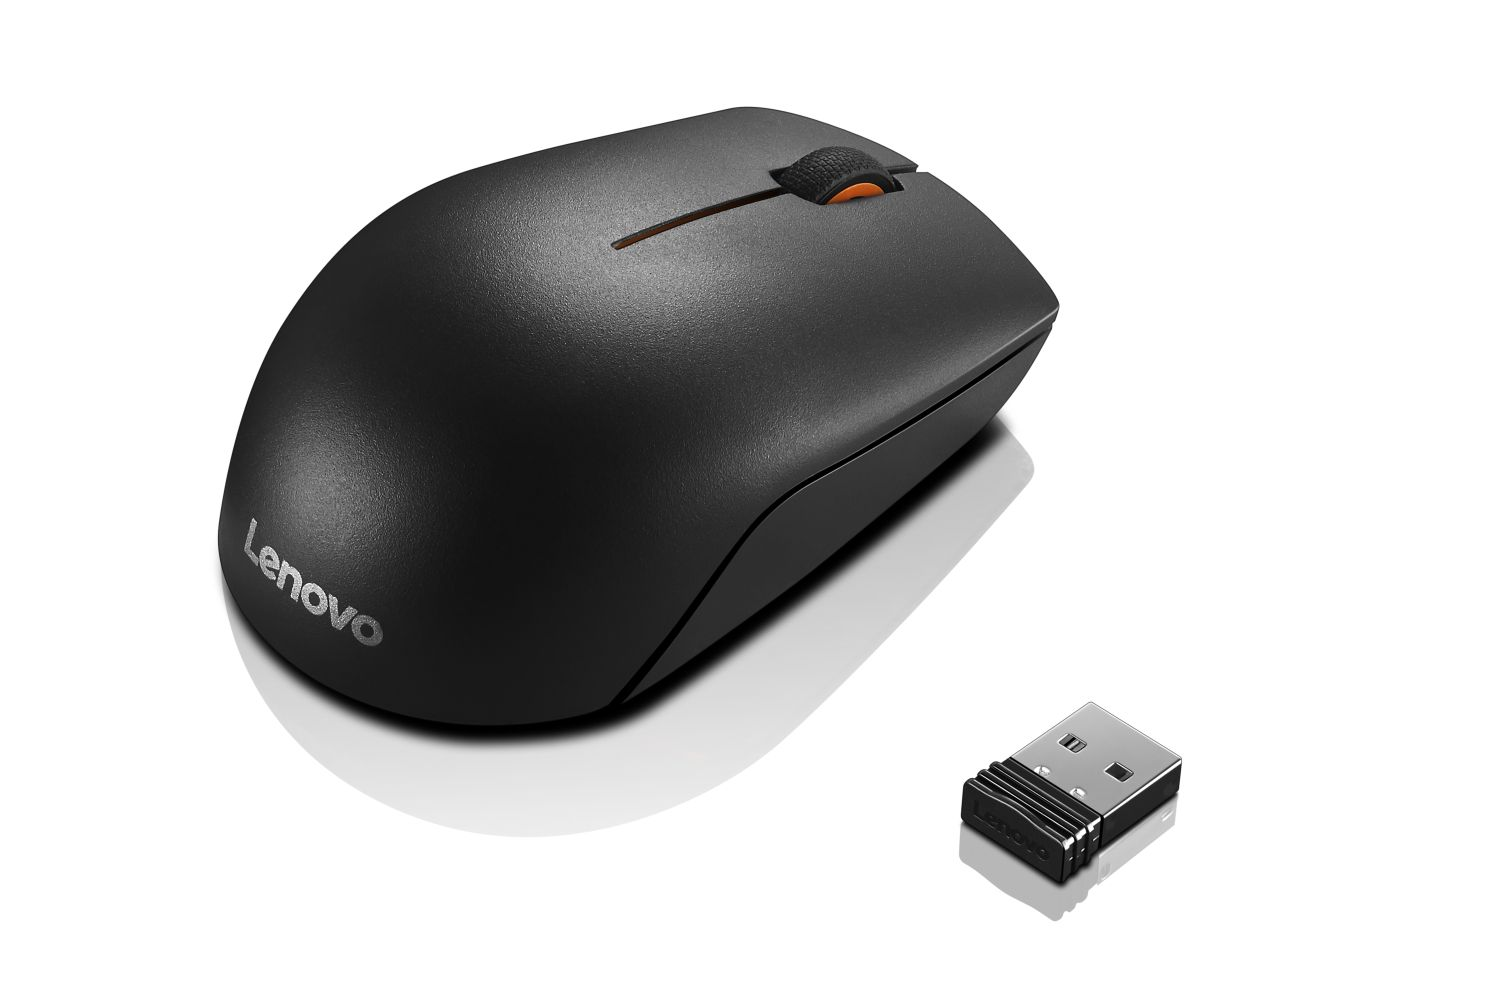 Lenovo myš CONS 300 Wireless Compact Mouse